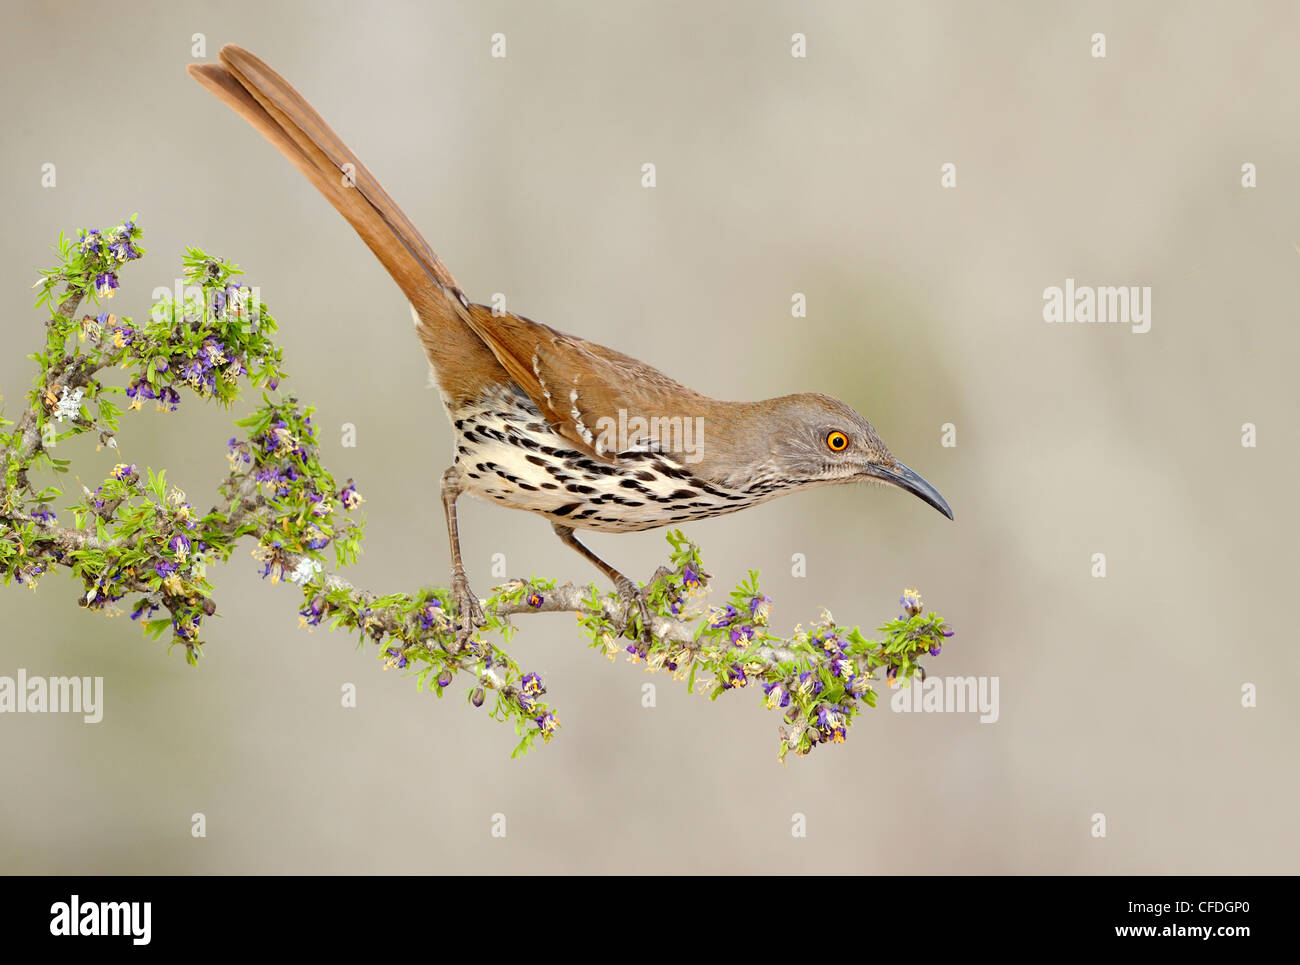 Long-billed Thrasher (Toxostoma longirostre) - Santa Clara Ranch, Texas, United States of America - Stock Image